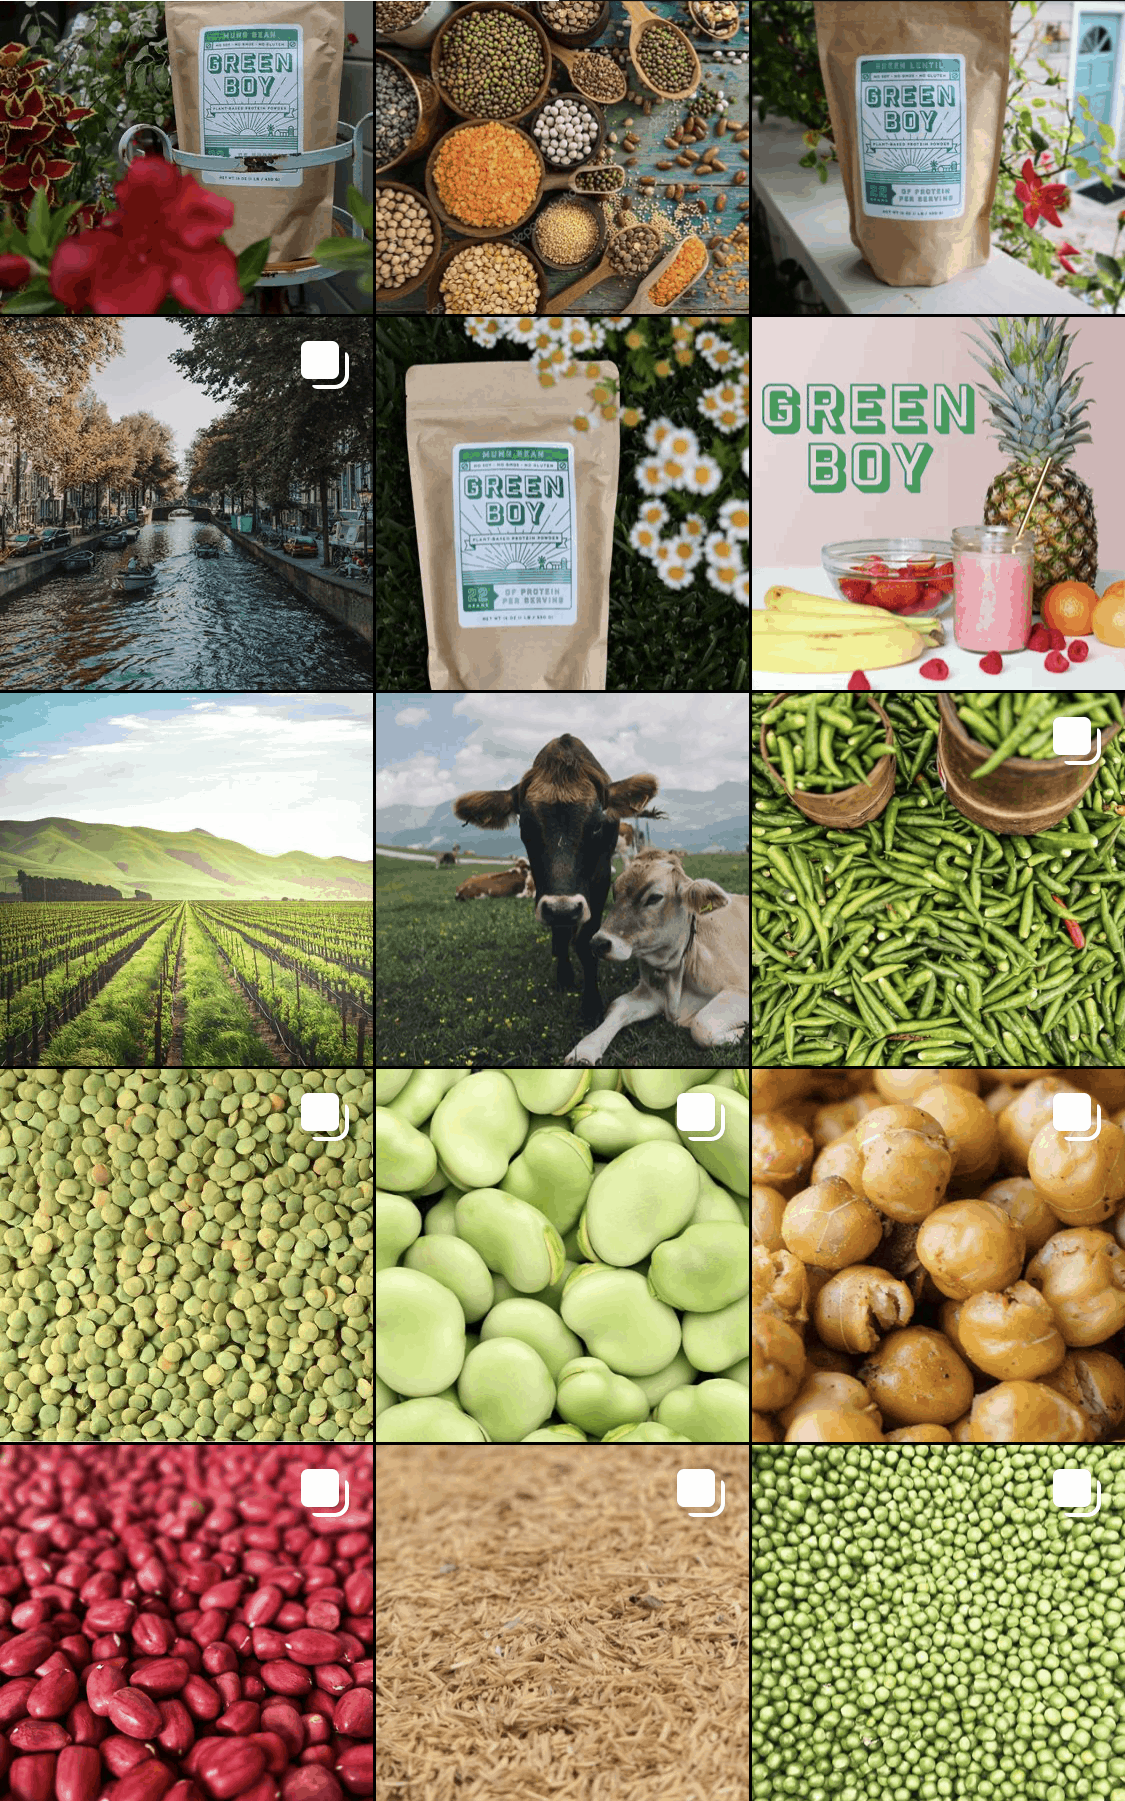 green boy products instagram feed before